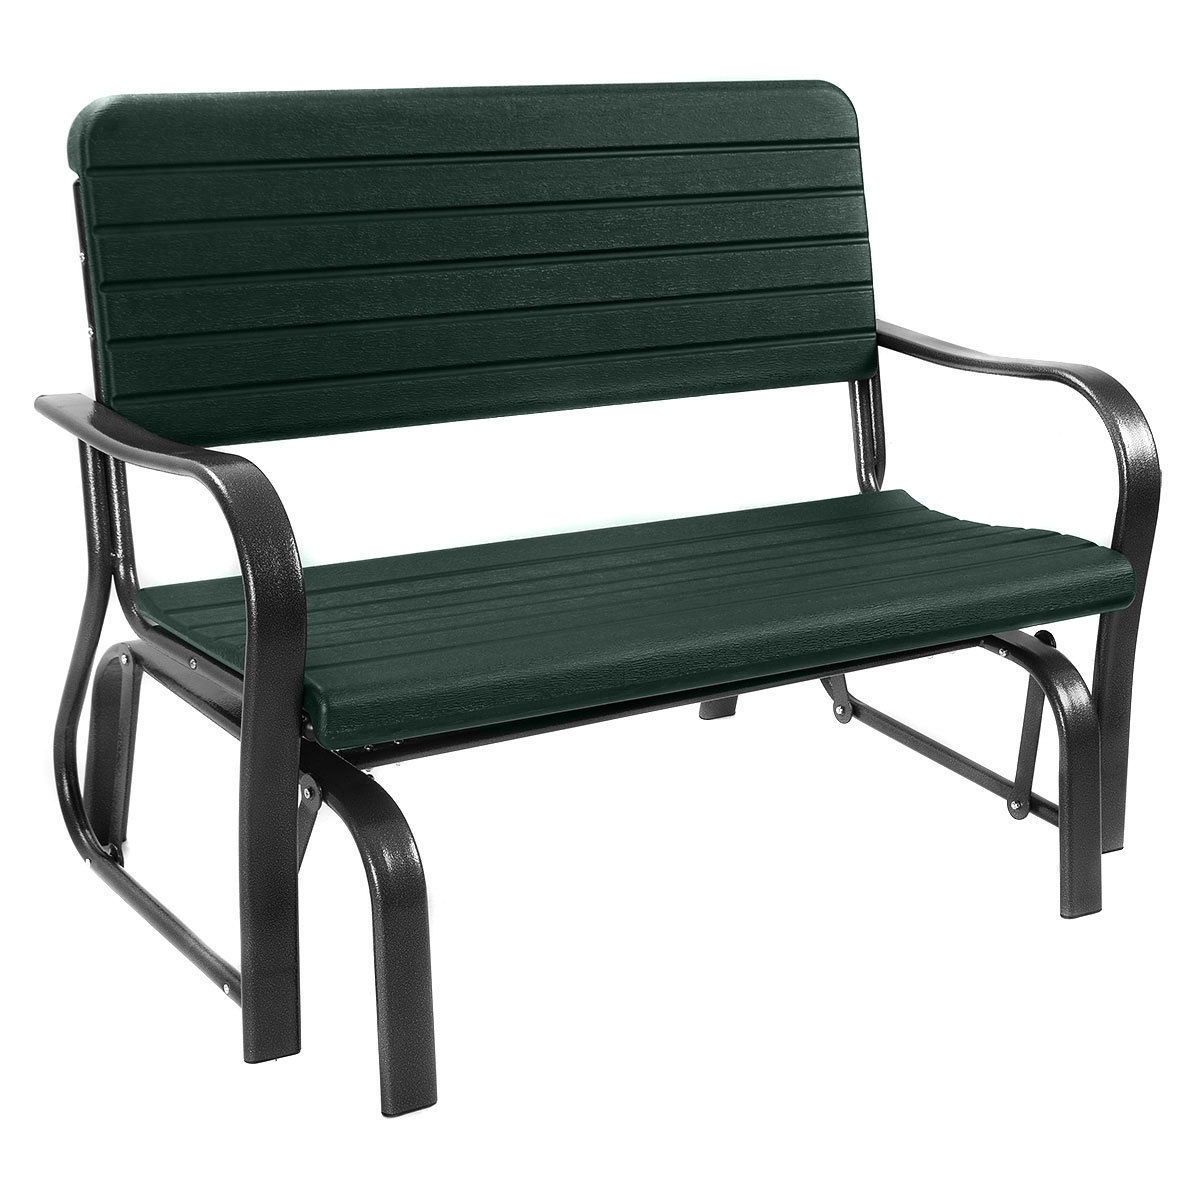 Widely Used Outdoor Swing Glider Chairs With Powder Coated Steel Frame In Outdoor Patio Steel Swing Bench Loveseat (Gallery 19 of 25)